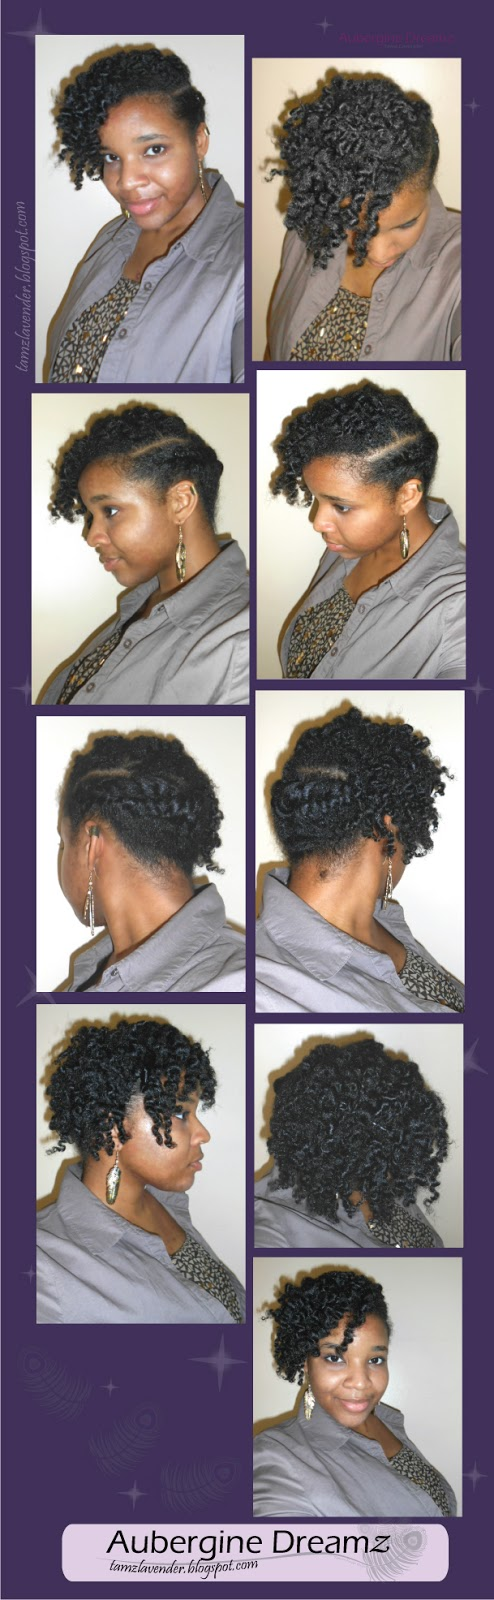 natural hair, twist out, curls, curly hair, edgy hair style, flat twists, asymmetrical hair style